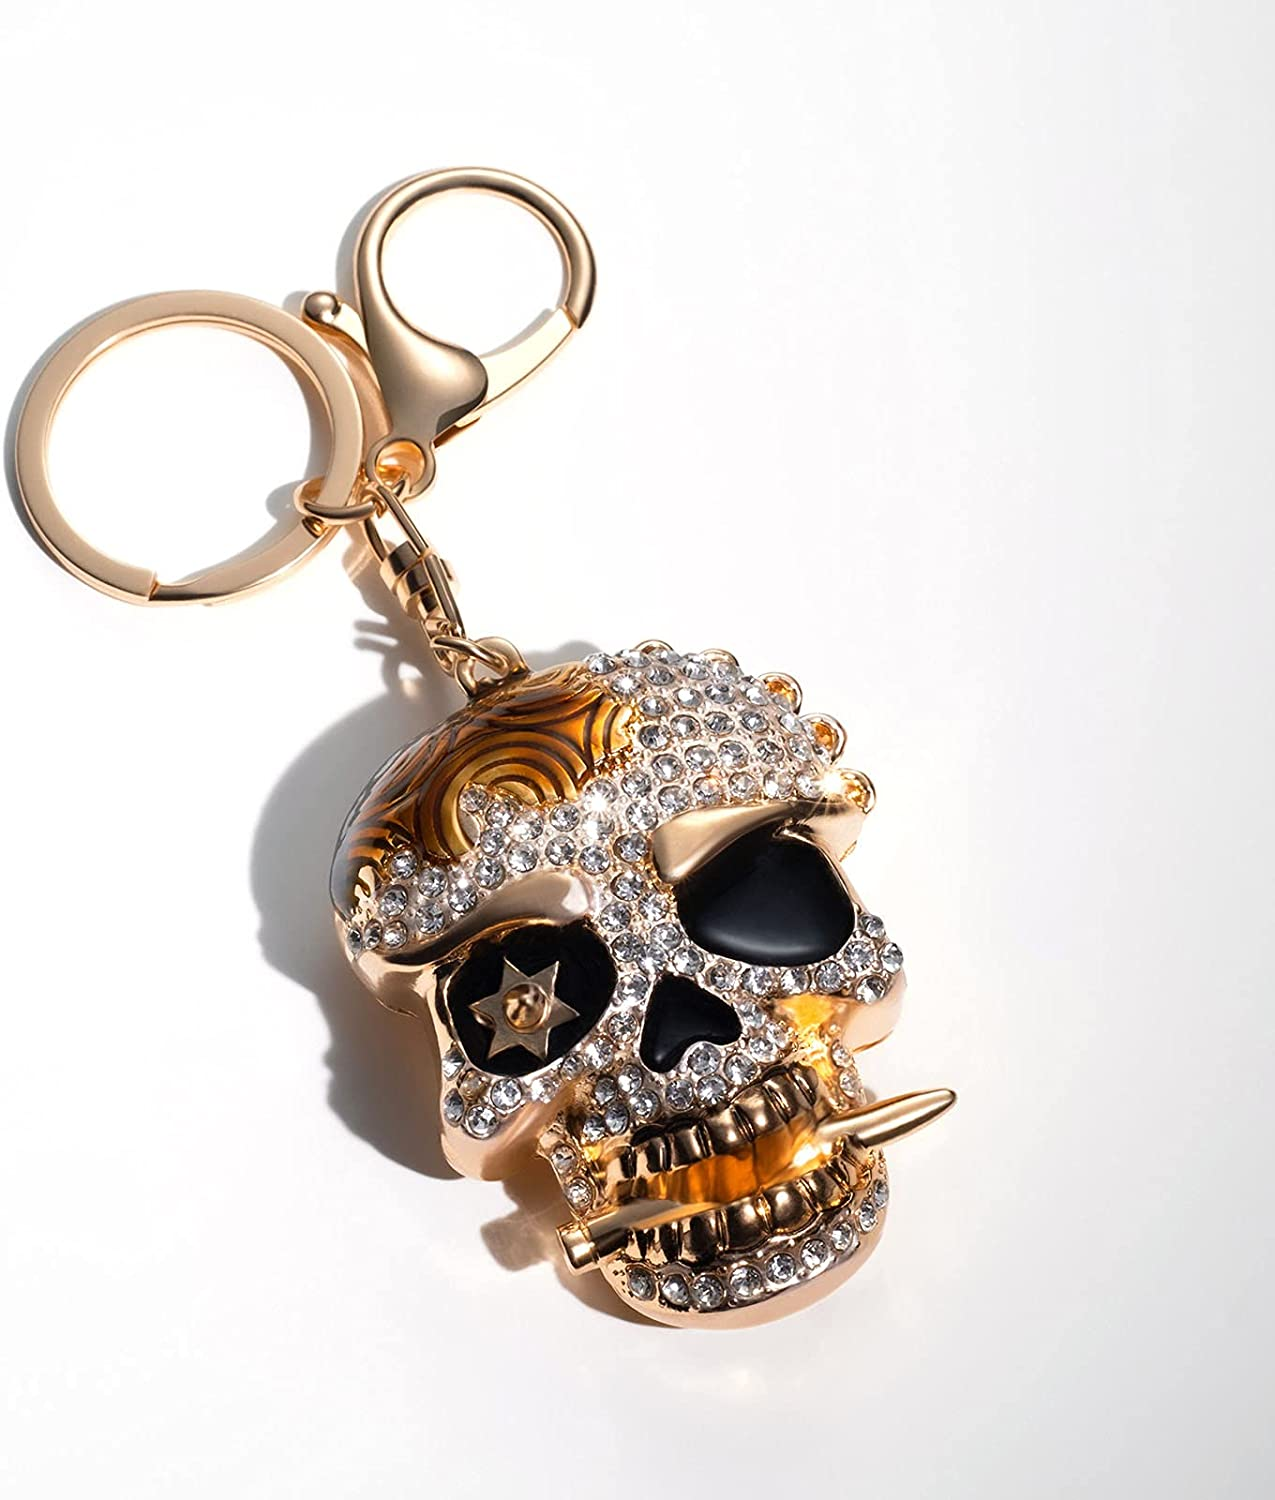 SSJABH Creative Limited time trial price Metal Crystal Popular products Skull Family Key Keychain Chain Ke